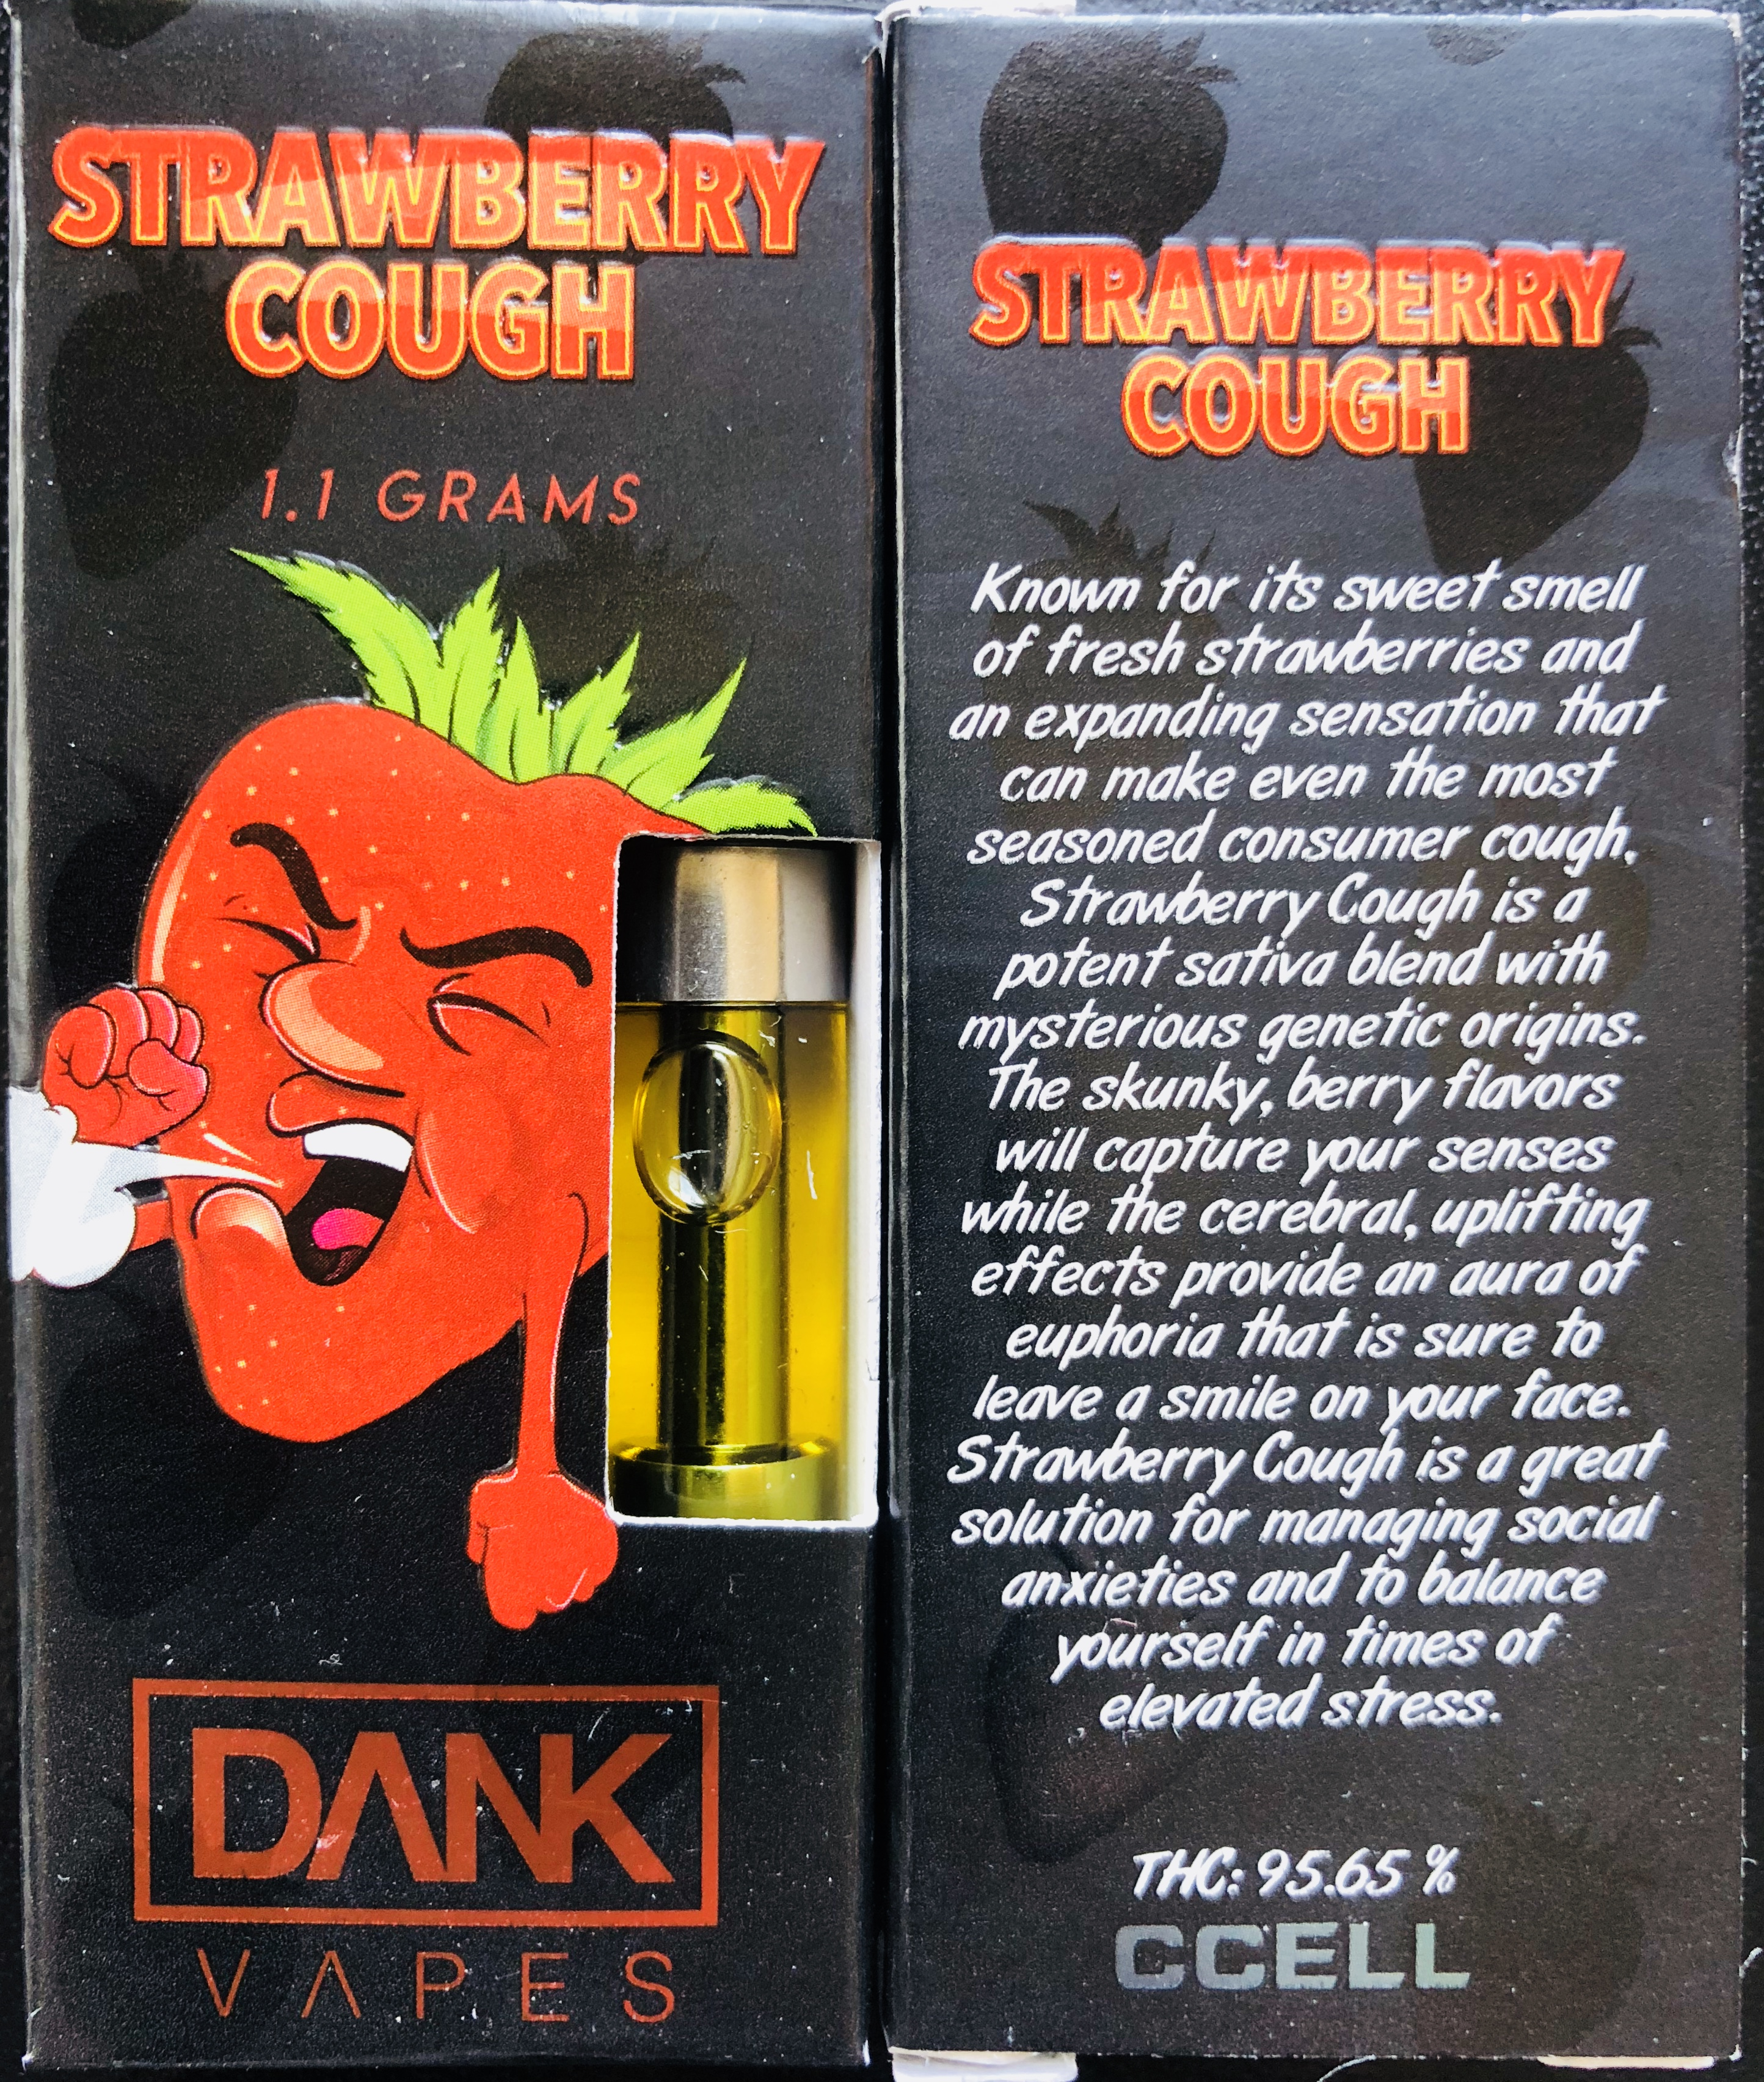 DANK VAPES: Strawberry Cough | Cannabis Menus By